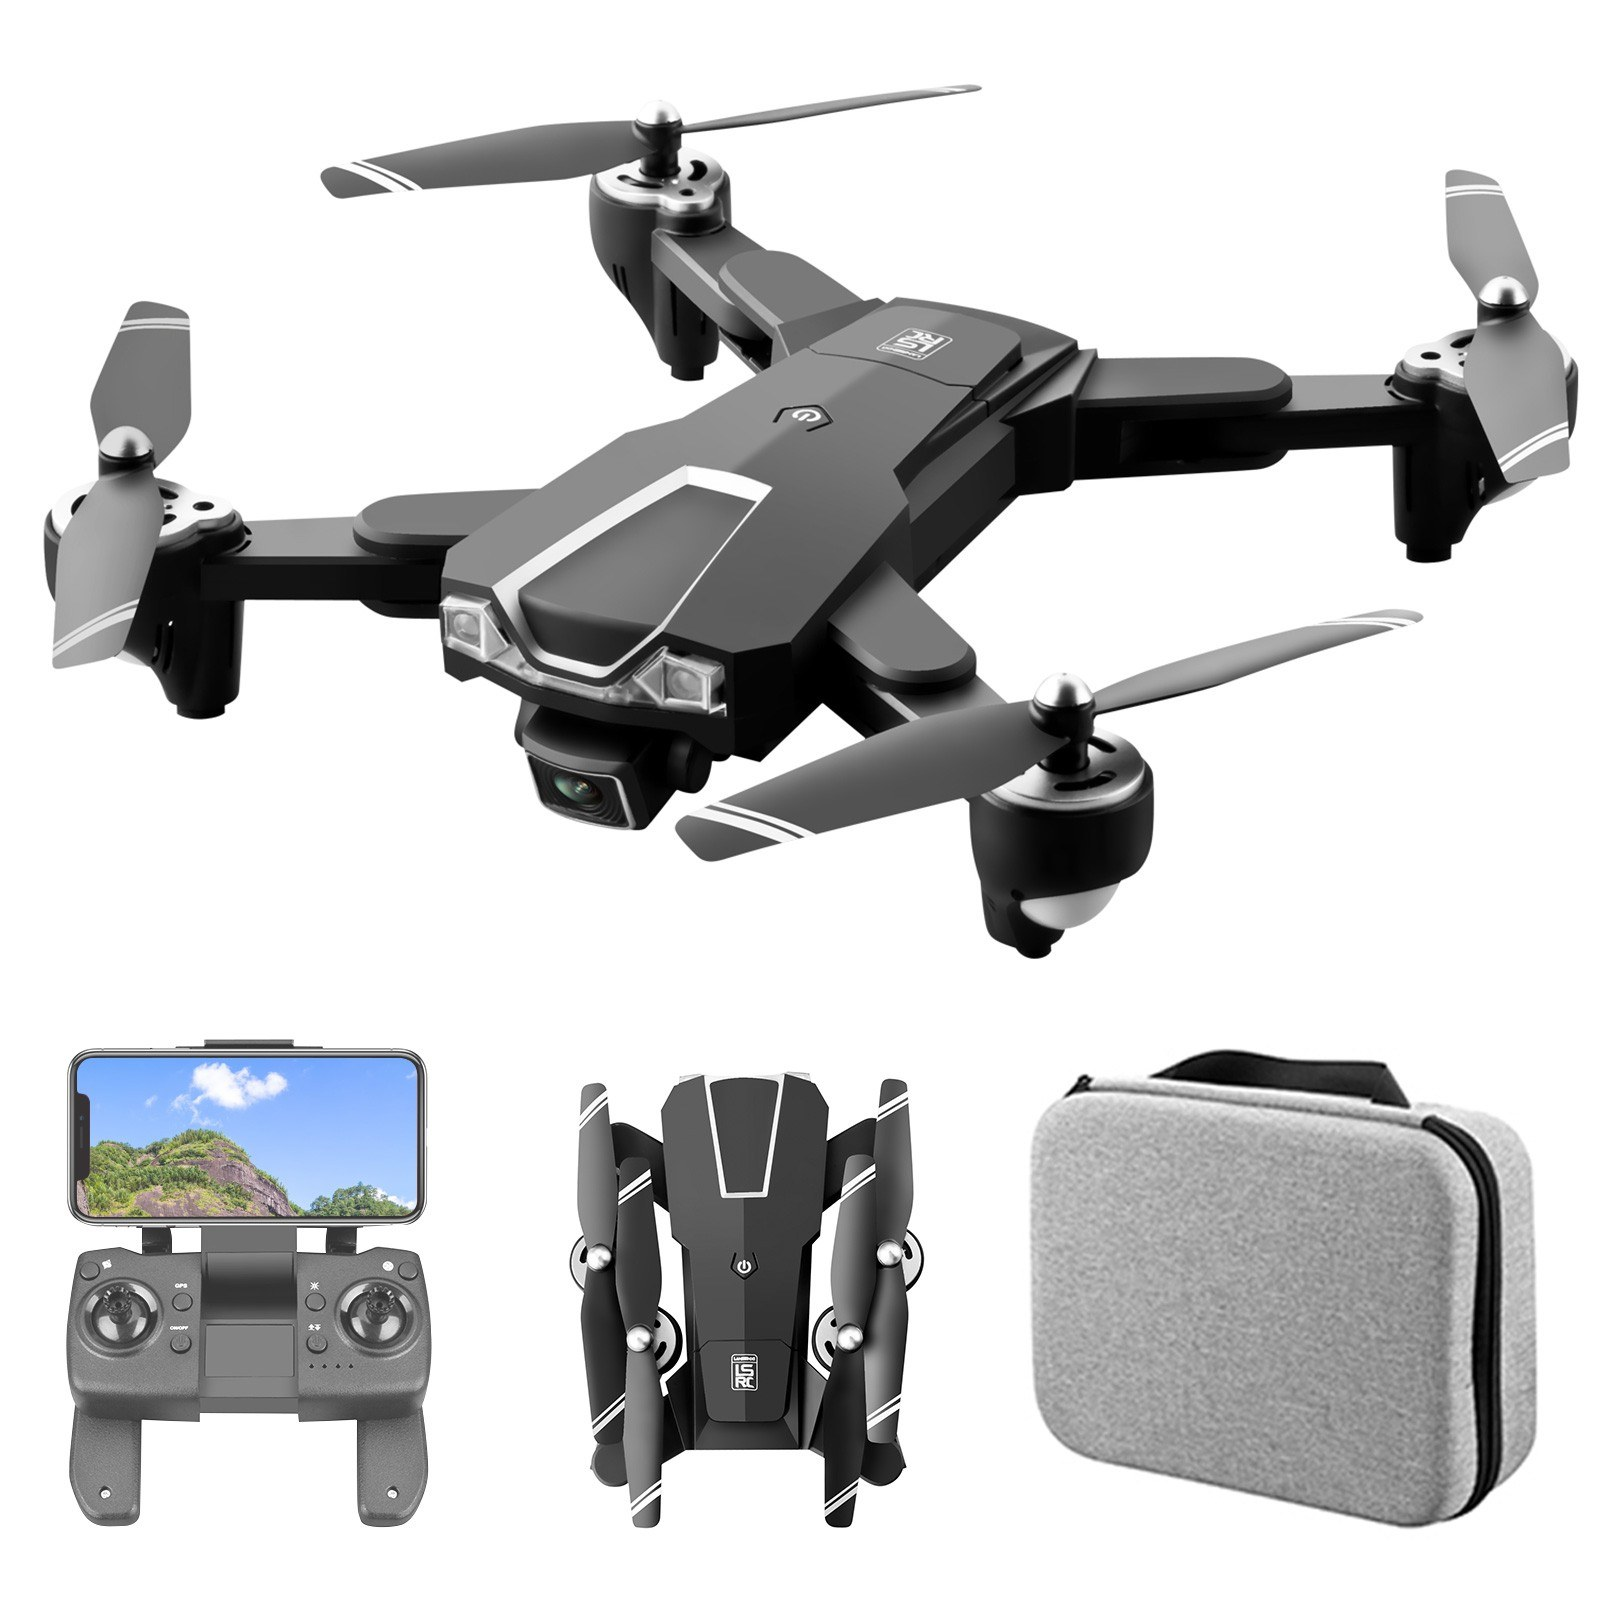 Tomtop - 54% OFF LS-25 5G WIFI FPV GPS 4K Camera RC Drone with Storage Bag for $79.99, Free Shipping $79.99